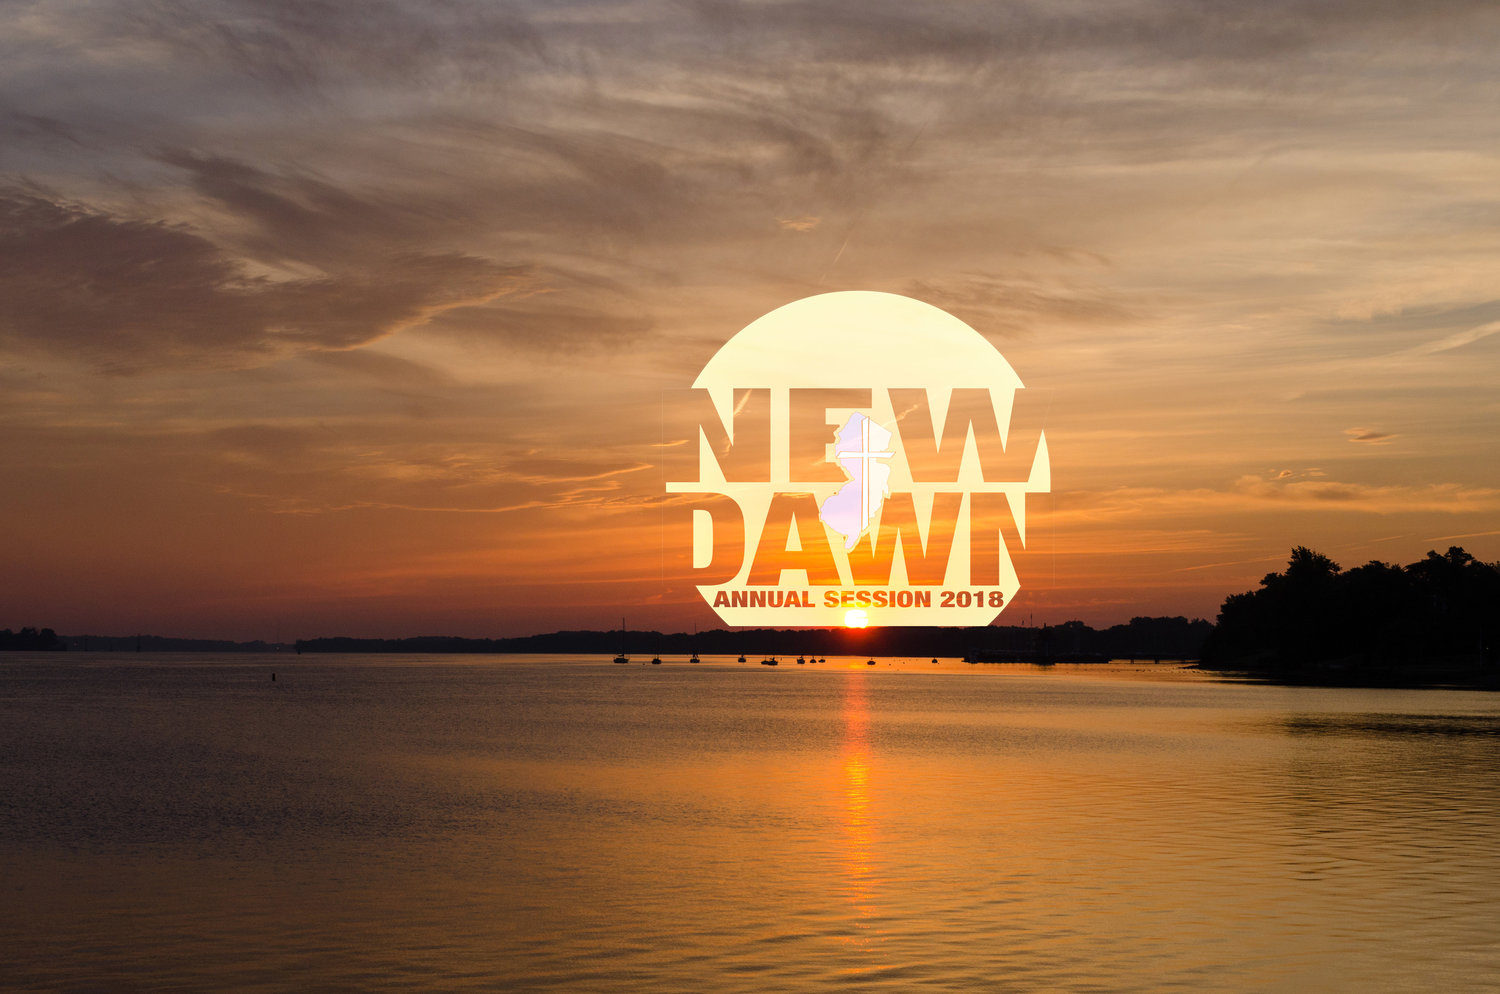 Get Ready For A New Dawn - Annual Session 2018